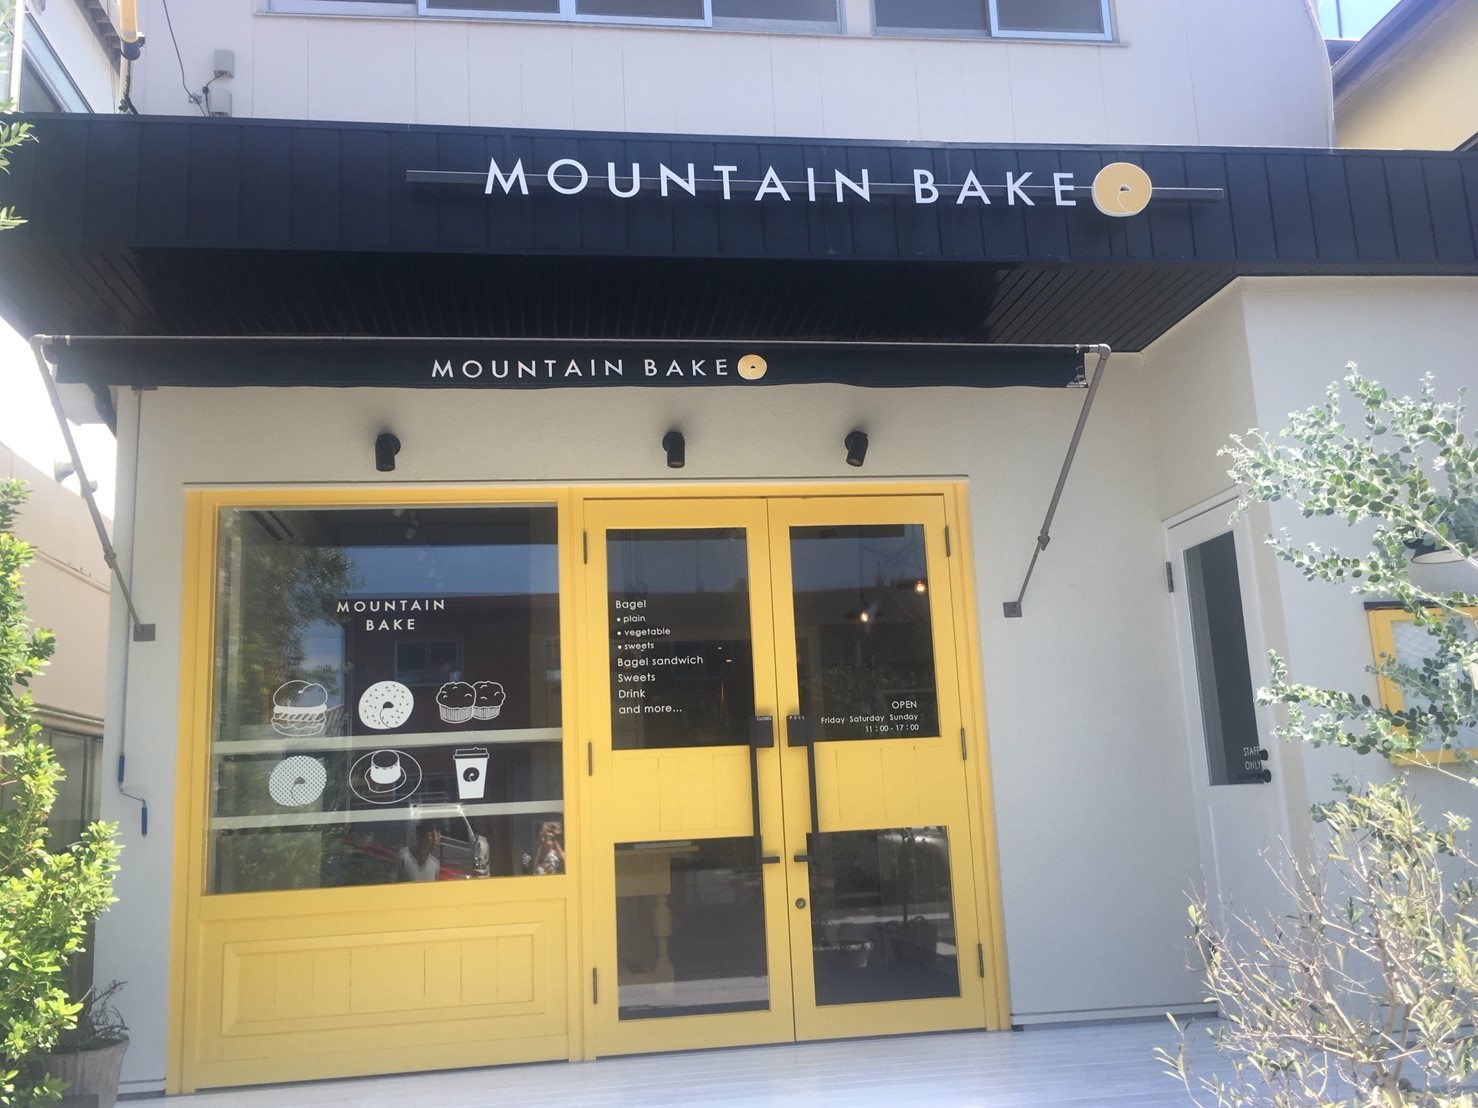 MOUNTAIN BAKE